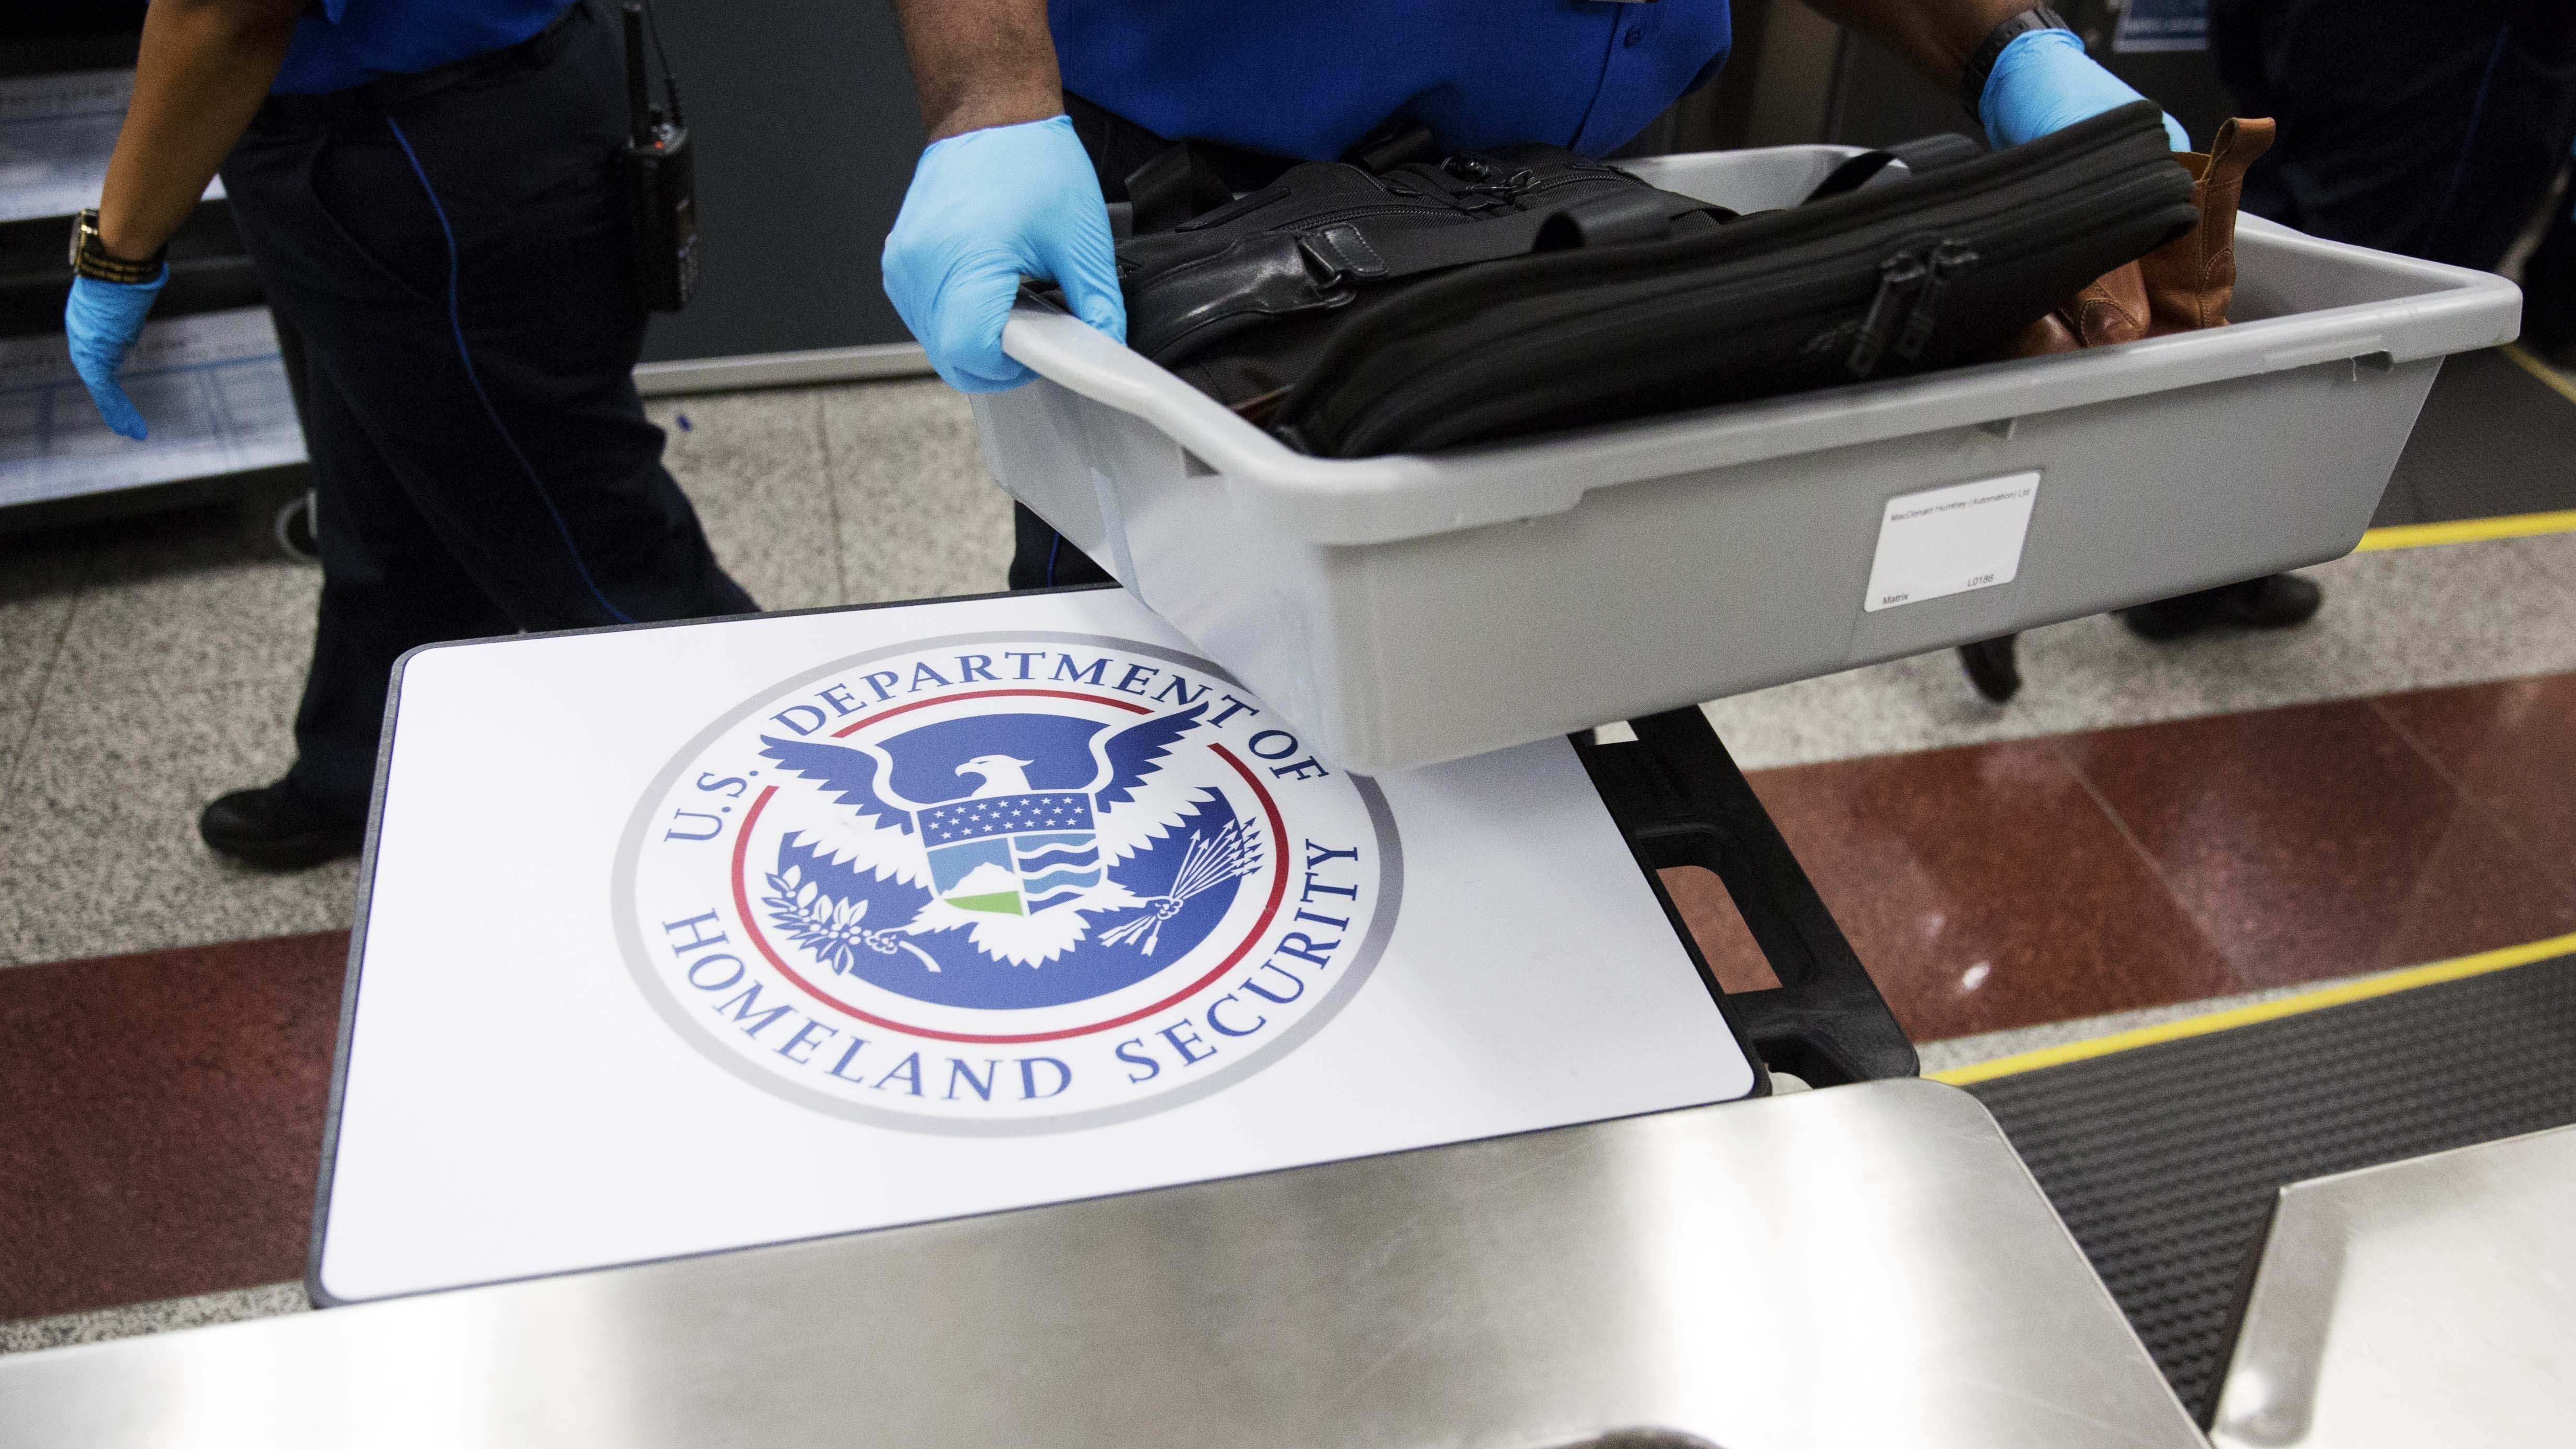 A U.S. Department of Homeland Security seal is seen as a TSA official moves a bin for additional screening at Hartsfield-Jackson Atlanta International Airport.